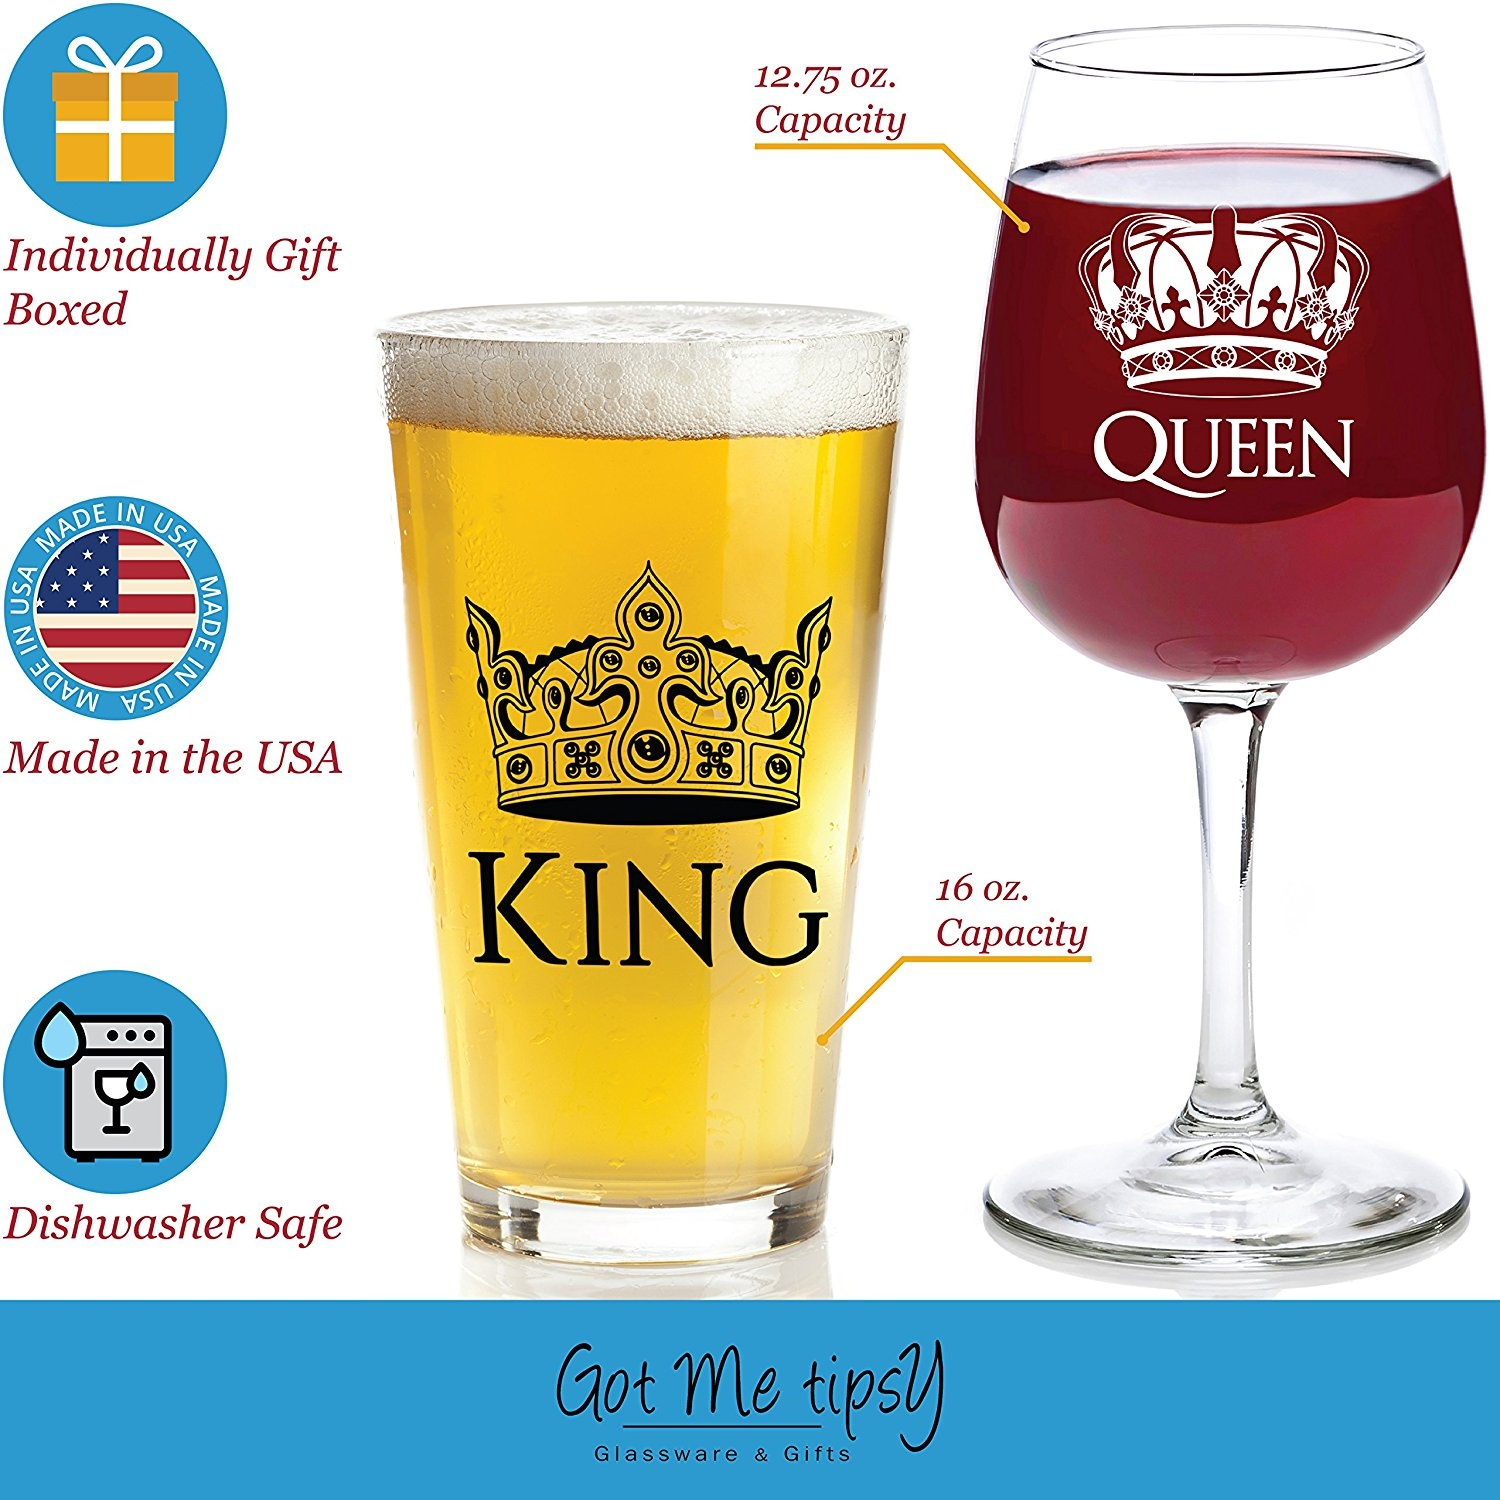 617e63ab7e1 King and Queen Gift Set - 470ml Beer Pint Glass, 380ml Wine Glass - Cool  Present Idea For Wedding, Engagement, Housewarming, Anniversary, Newlyweds,  ...